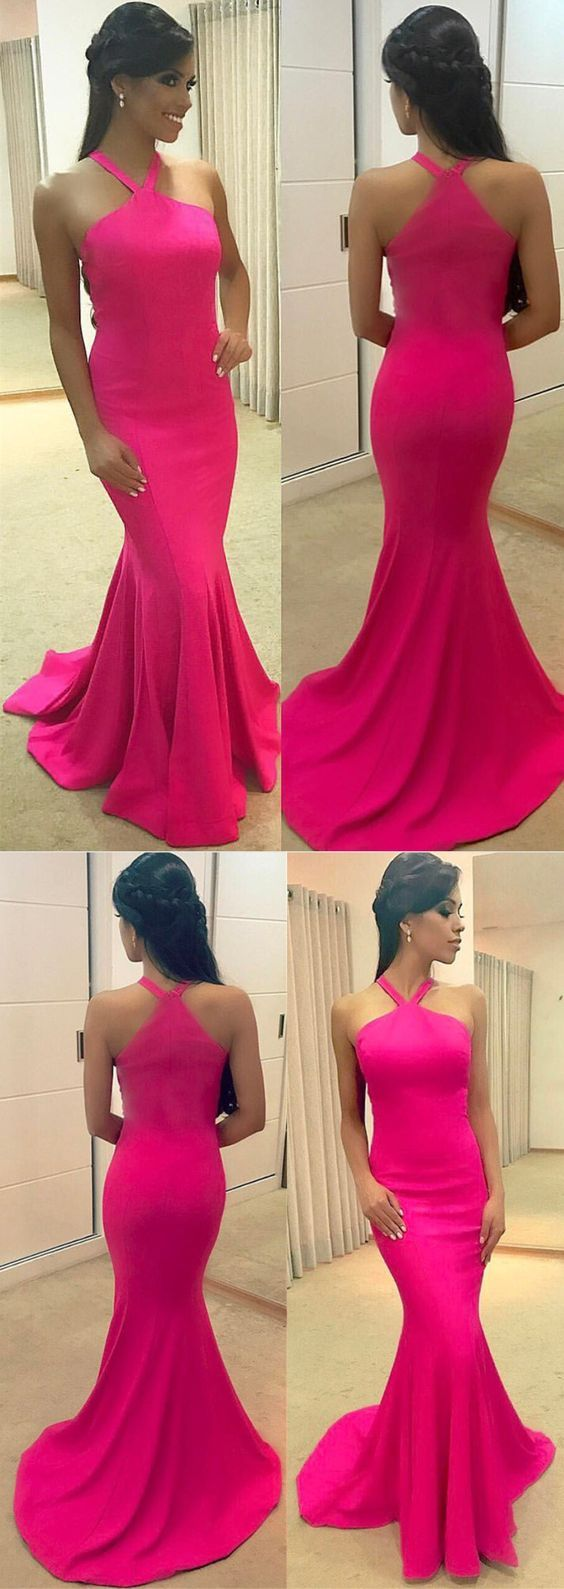 Rose pink long jersey mermaid prom dresses halter evening gowns